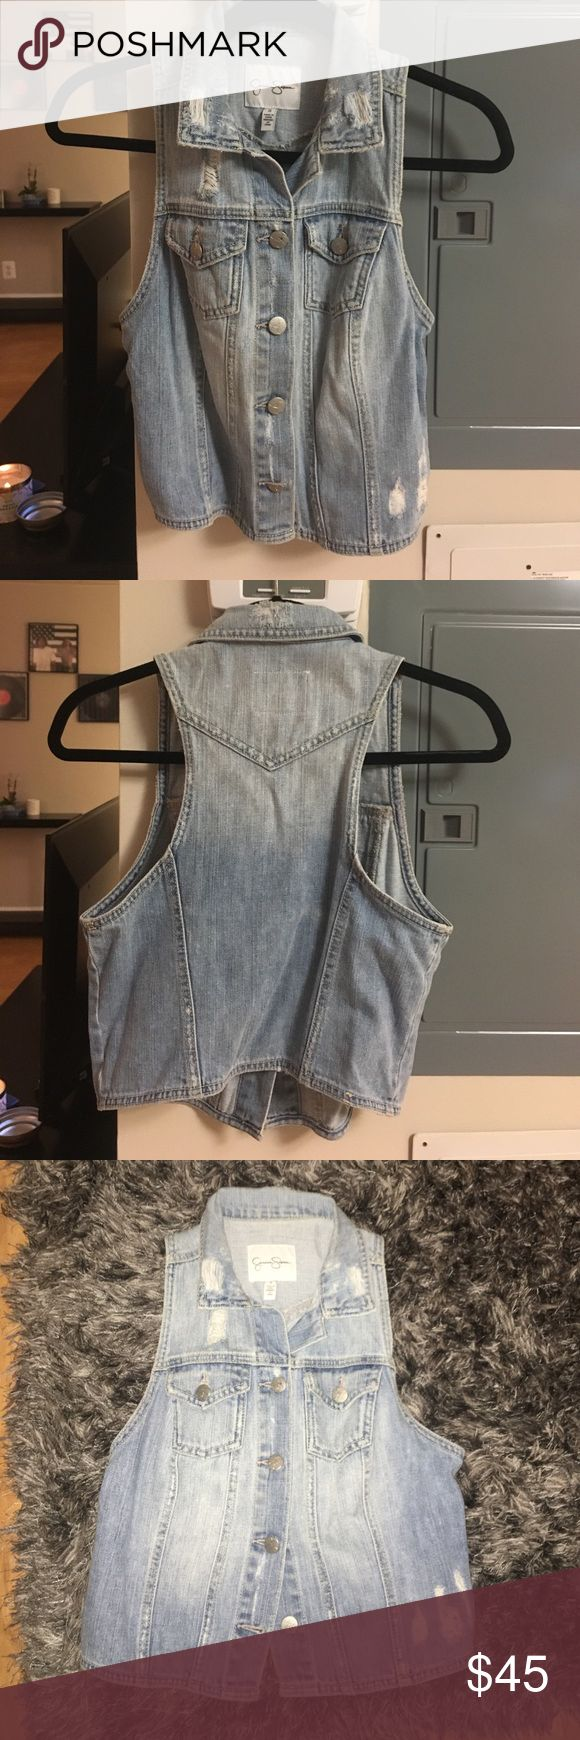 Jessica Simpson Distressed Jean Vest Light blue jean vest with distressed accents Jessica Simpson Jackets & Coats Vests